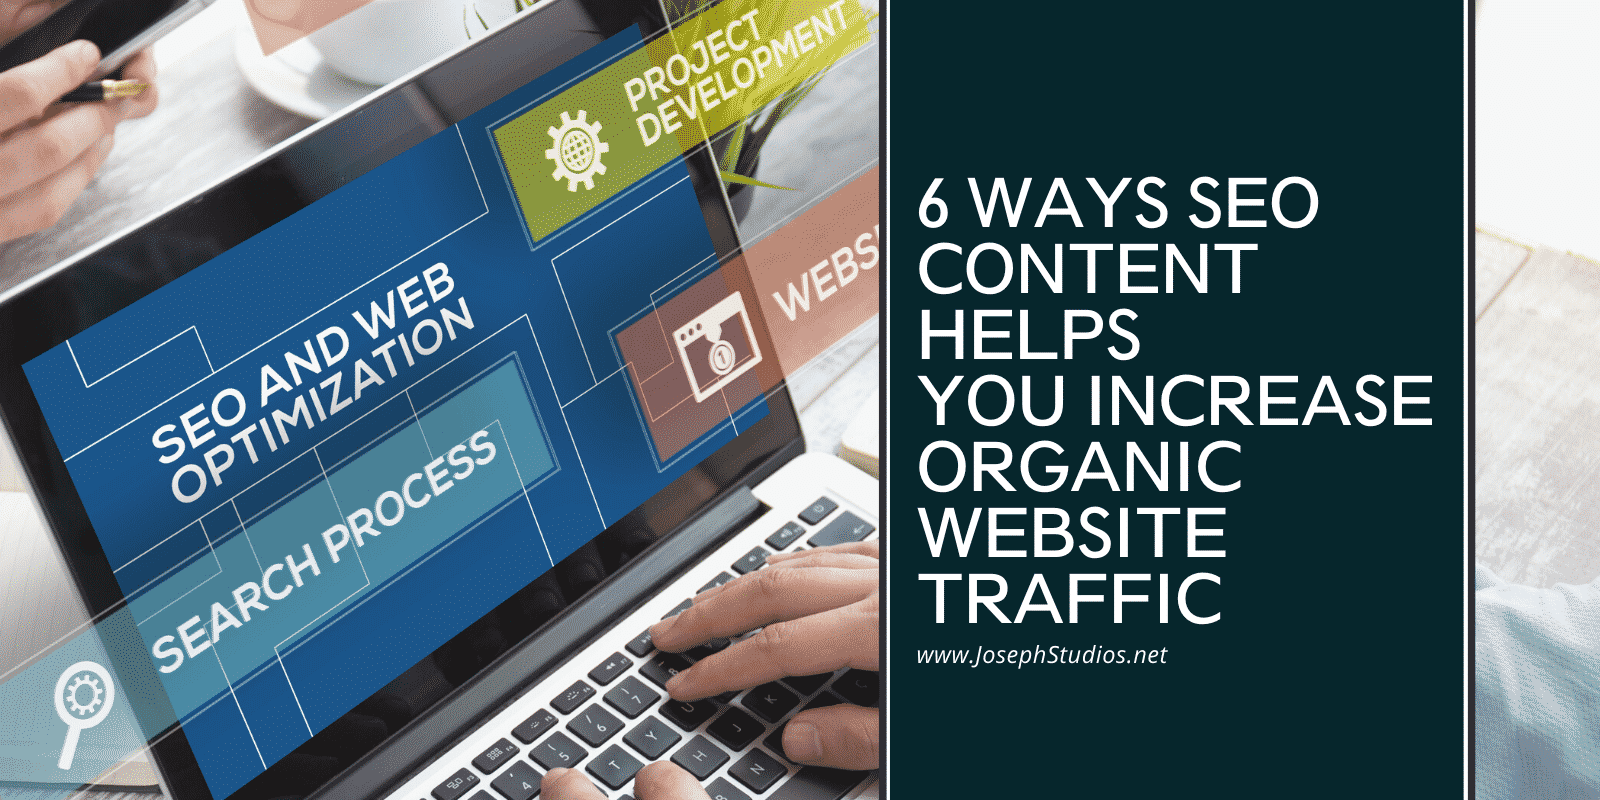 6 Ways SEO Content Helps You Increase Organic Website Traffic